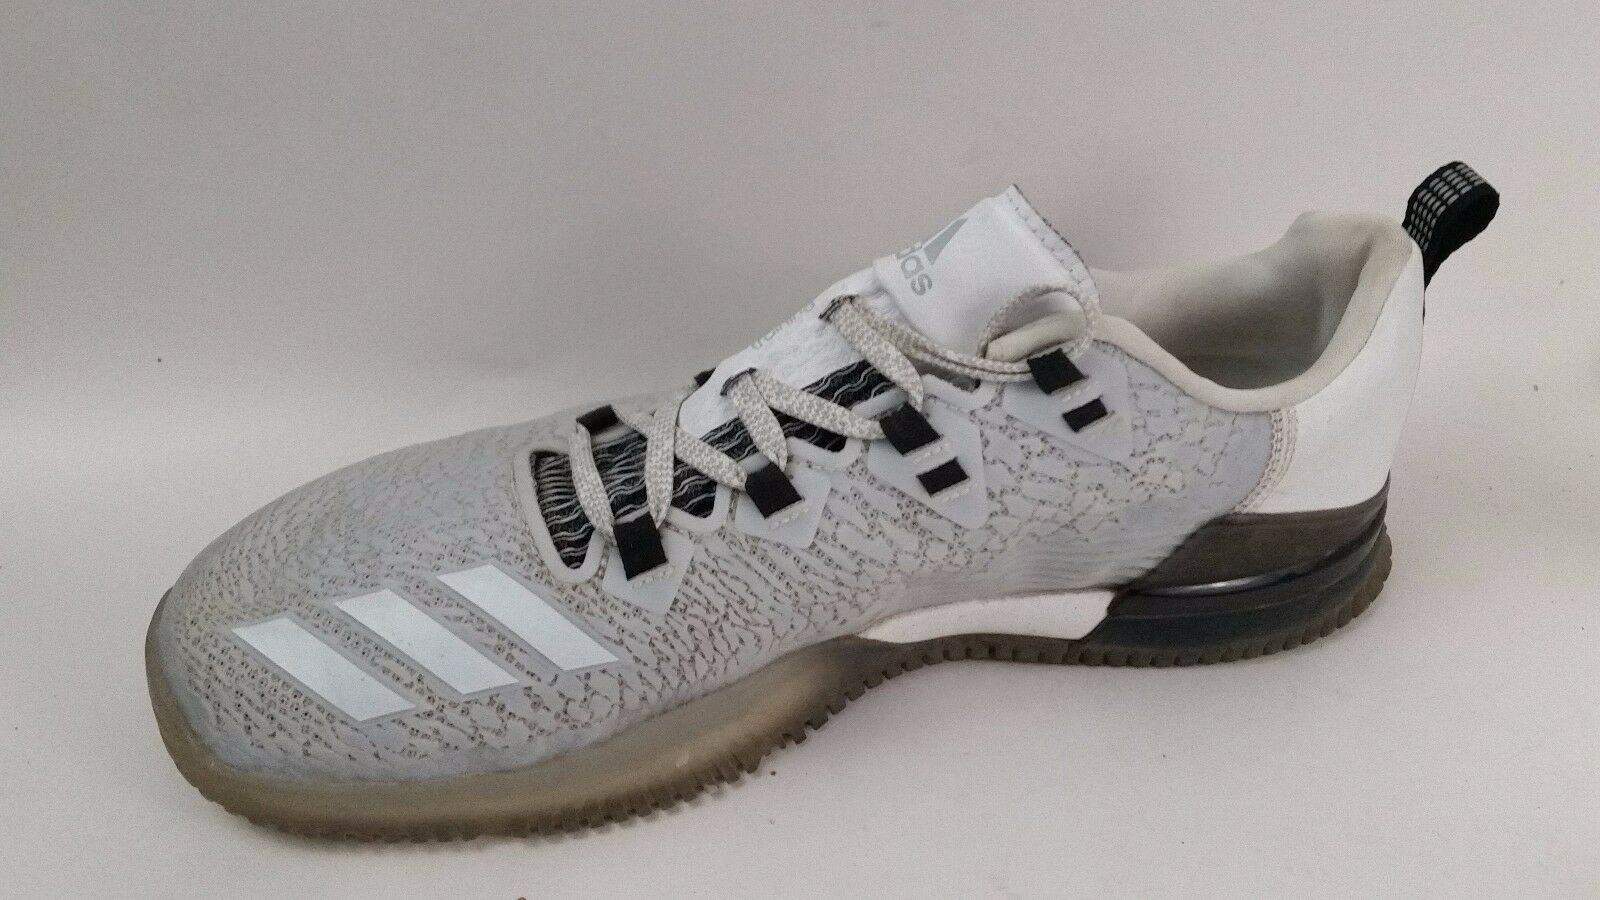 Adidas Trainer Womens 10 Med Training CrazyPower Trainer Adidas Shoes Traxion Cross Fit BB1557 7f25b9